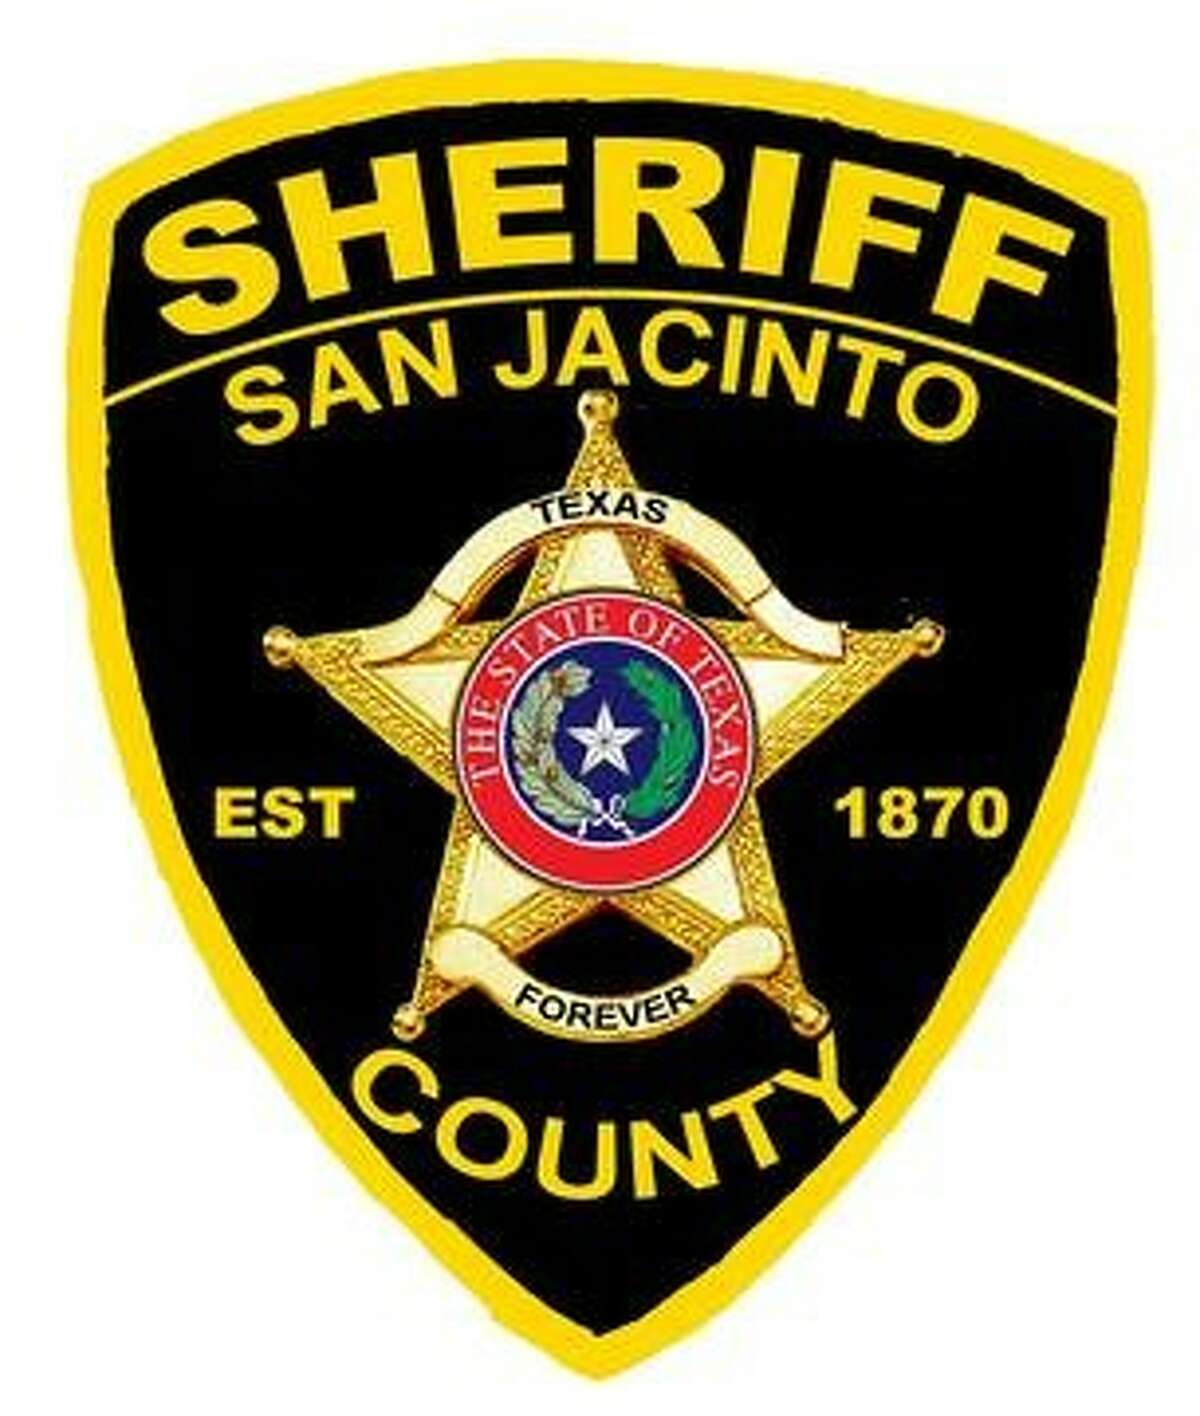 The Jail Division of the San Jacinto County Sheriff's Office reported 16 arrests for the week of Monday, Dec. 26, 2011 through Sunday, Jan. 1, 2012.